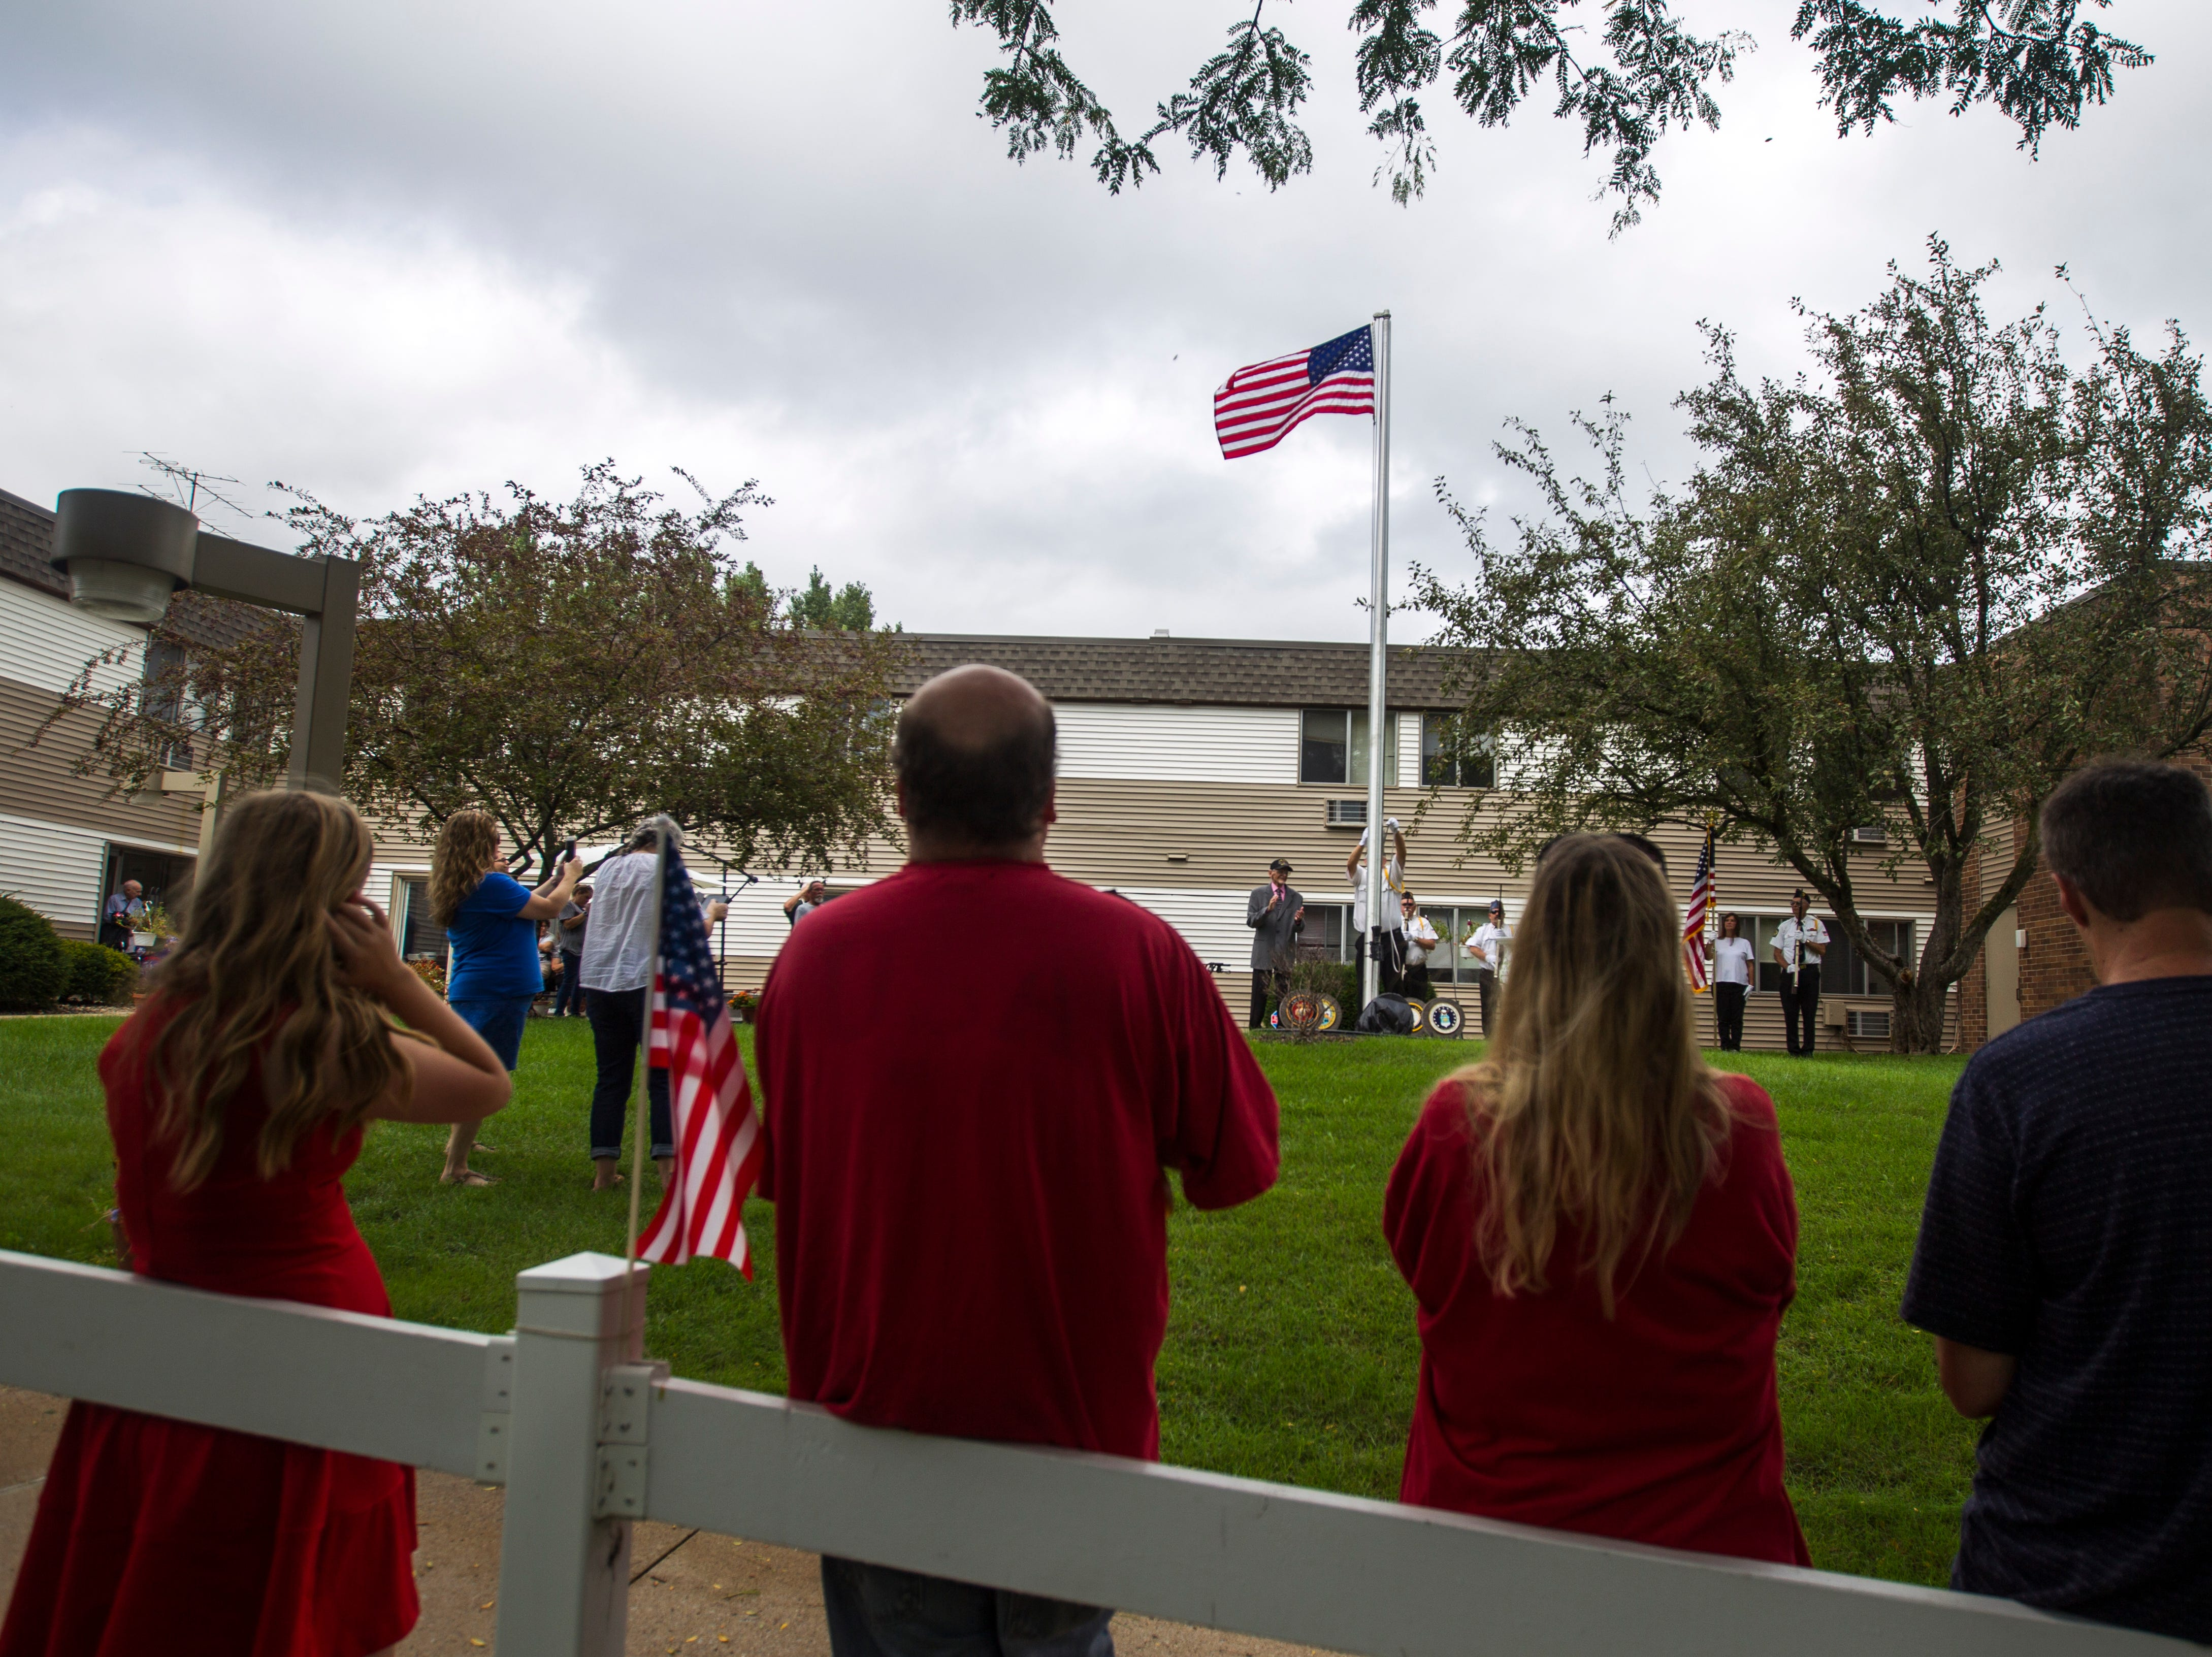 Spectators watch World War II U.S. Navy veteran Russell H. Ware and American Legion Post 721 honor guard Sgt. of arms Tom Travis raise a flag during a dedication ceremony on Monday, Sept. 3, 2018, at the Autumn Park Apartments in Iowa City.